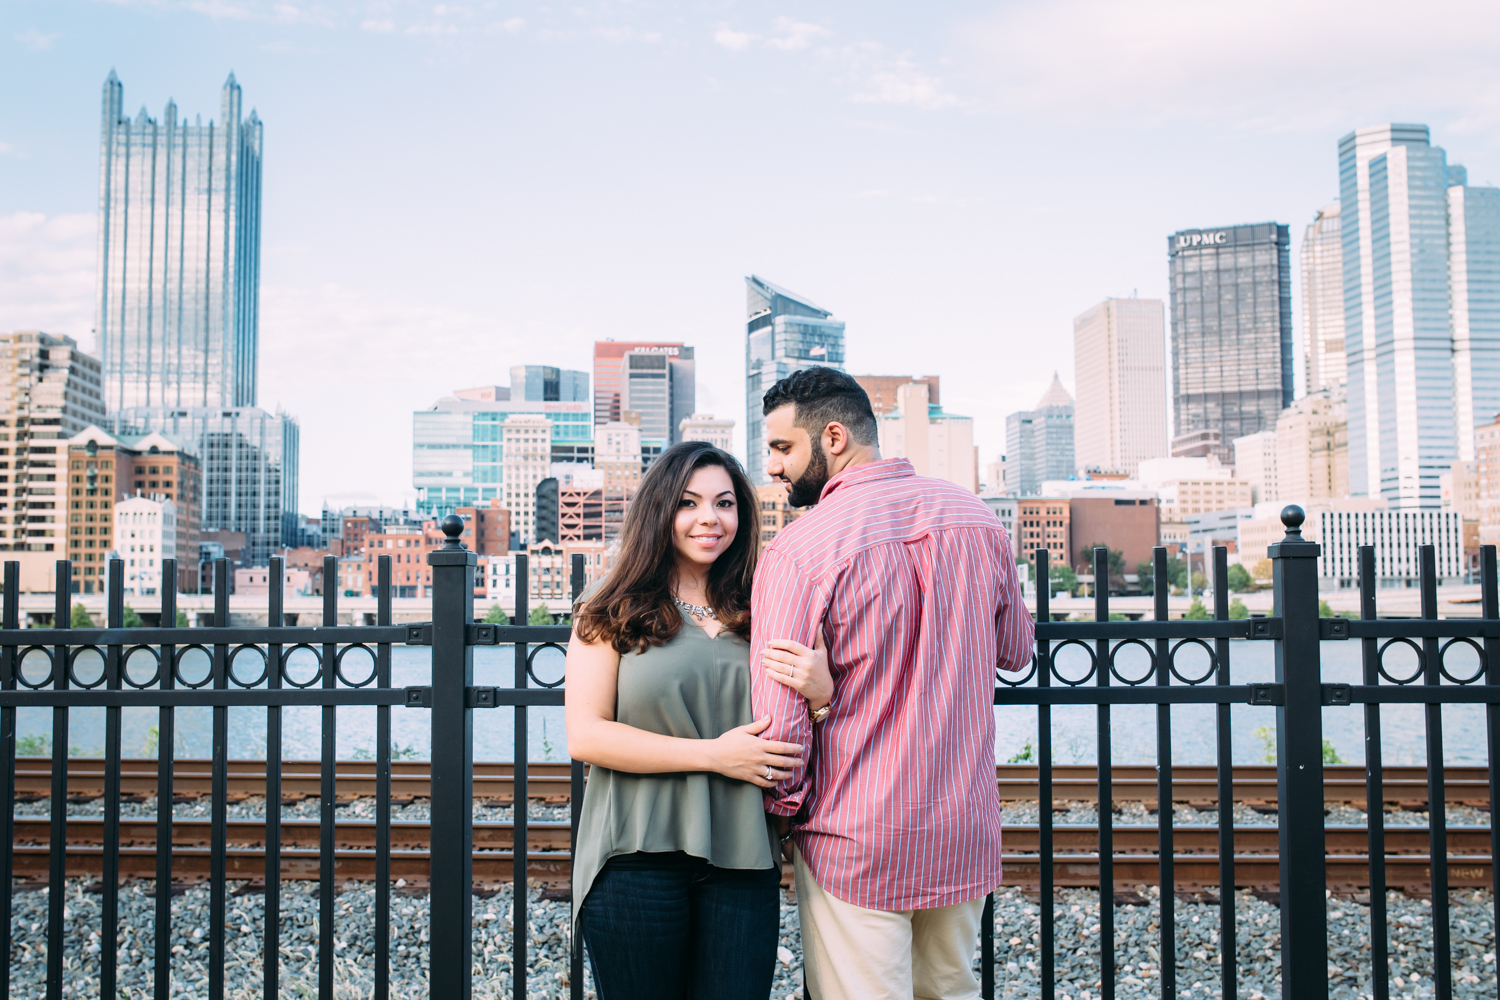 Ashley-reed-photography-pittsburgh-engagement-engagementphotography-engagementphotographer-stationsquare-statio-square-pittsburghengagementphotography-5.jpg